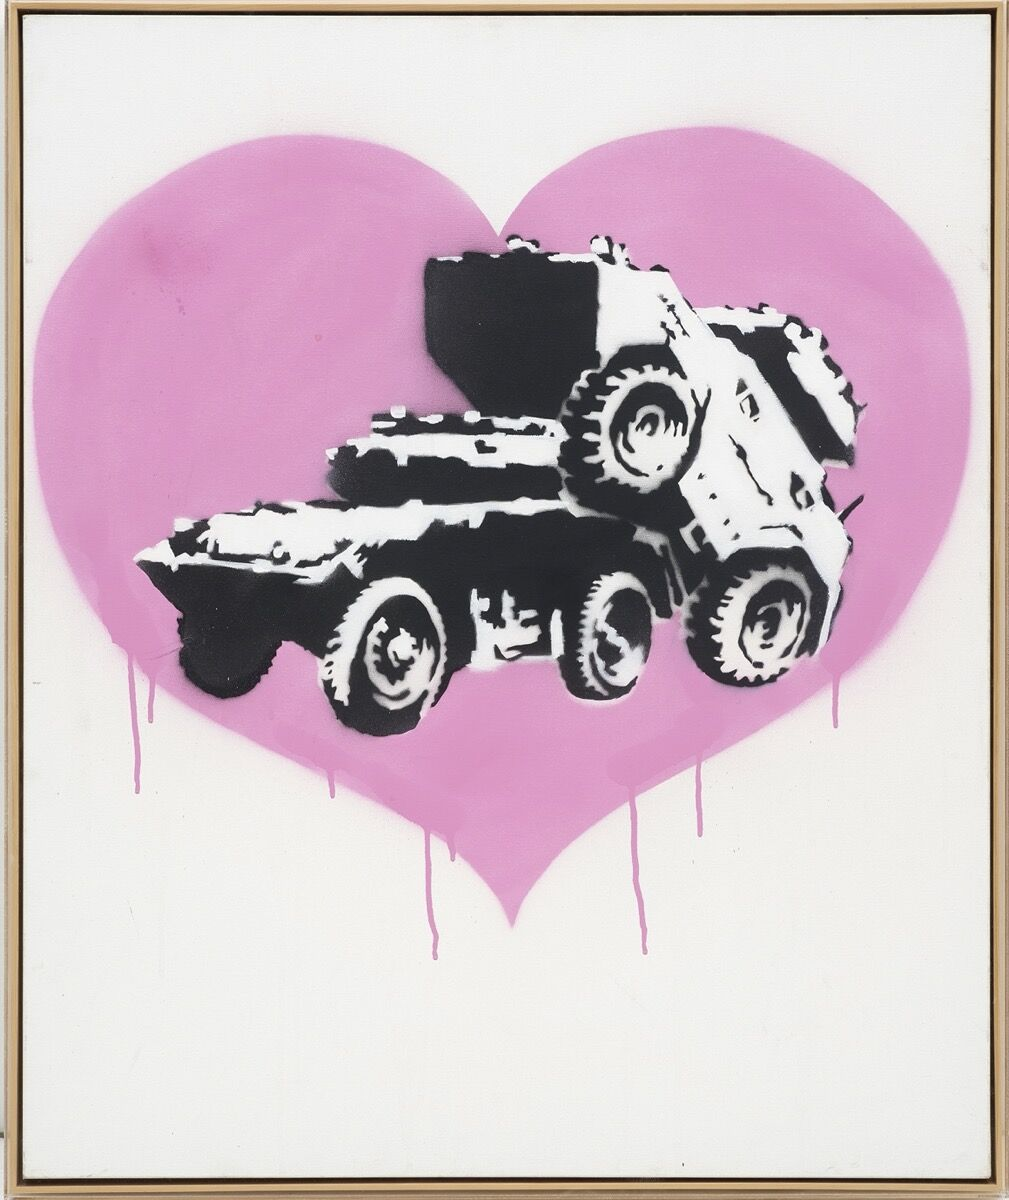 Banksy, Everytime I Make Love to You I Think of Someone Else, 2002. Courtesy of Phillips.